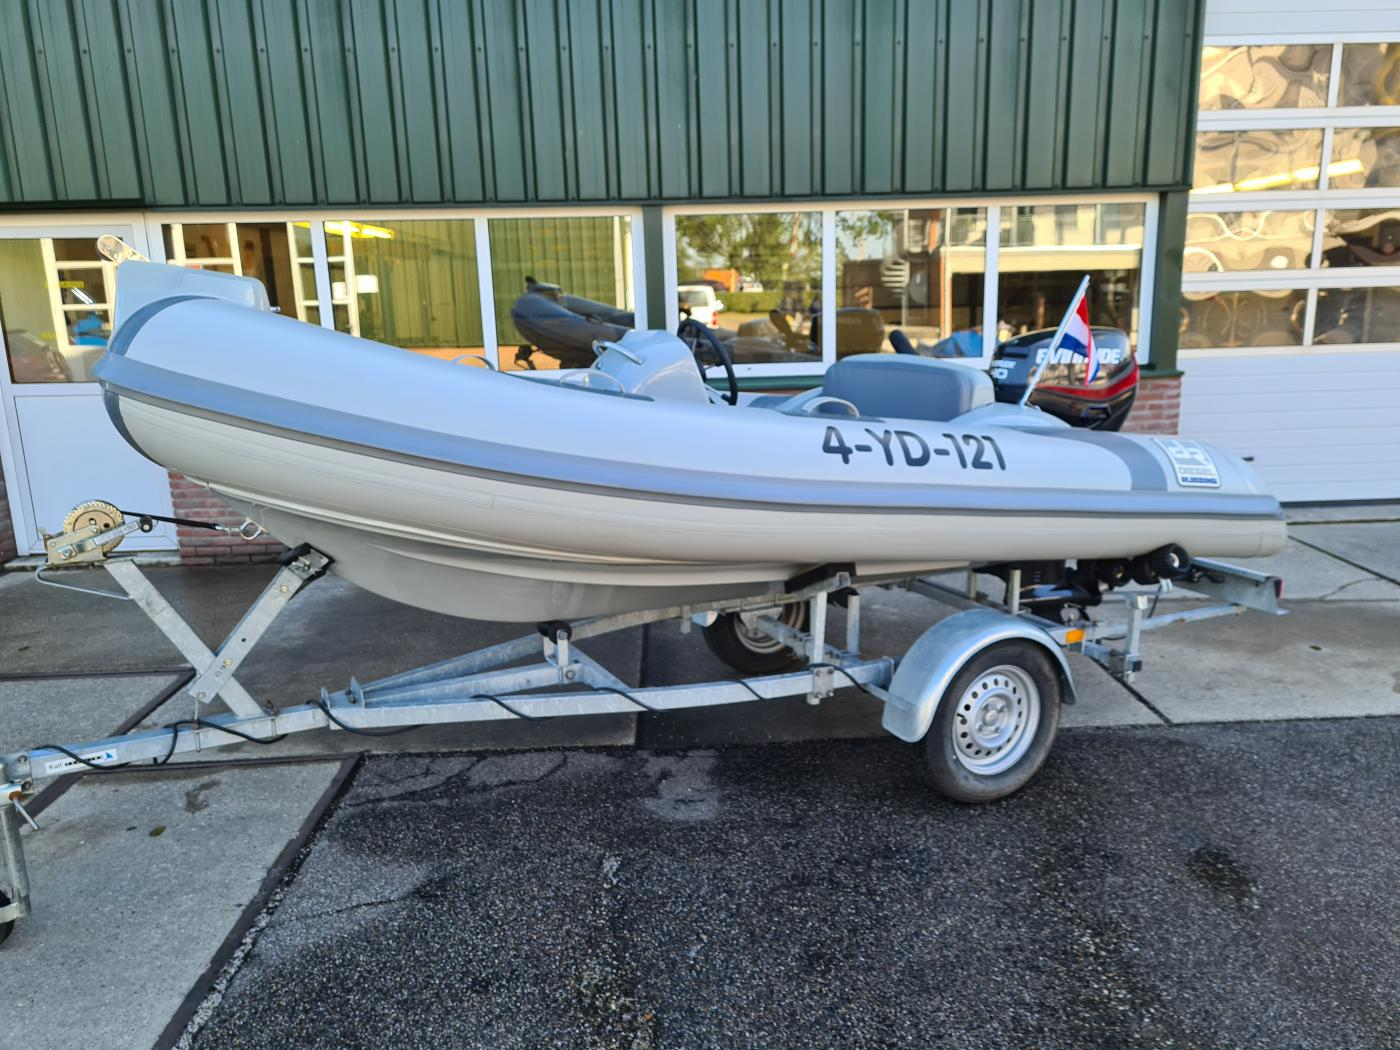 Te koop Diesel Rubbing 380 Hypalon Rubberboten | Bomert Watersport